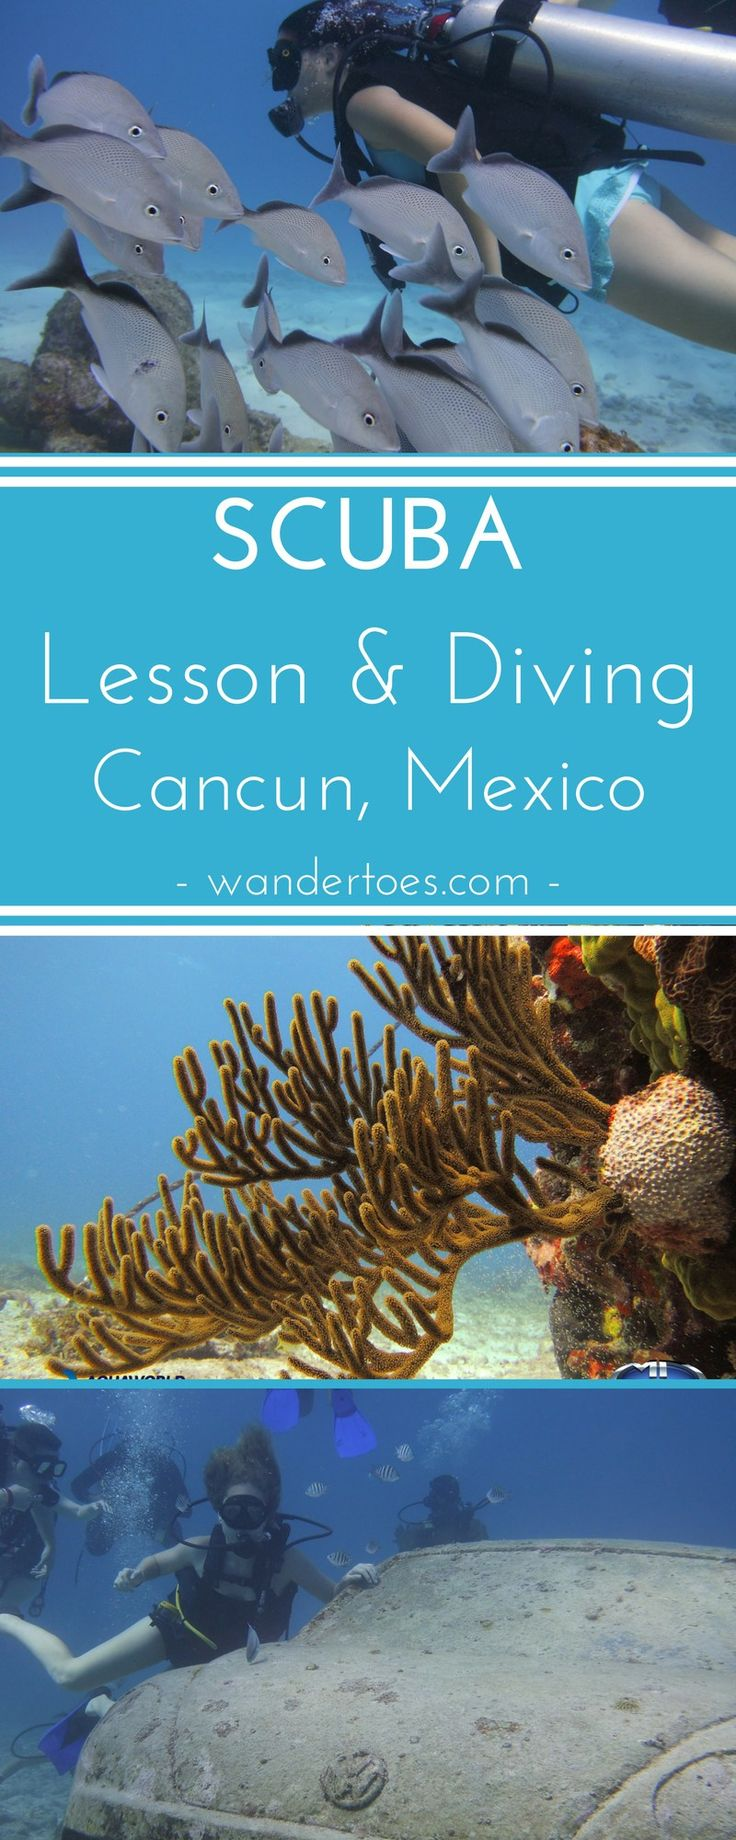 Best 25 scuba lessons ideas on pinterest scuba diving lessons cancun mexico a family scuba lesson and dive of musa the underwater museum 1betcityfo Gallery